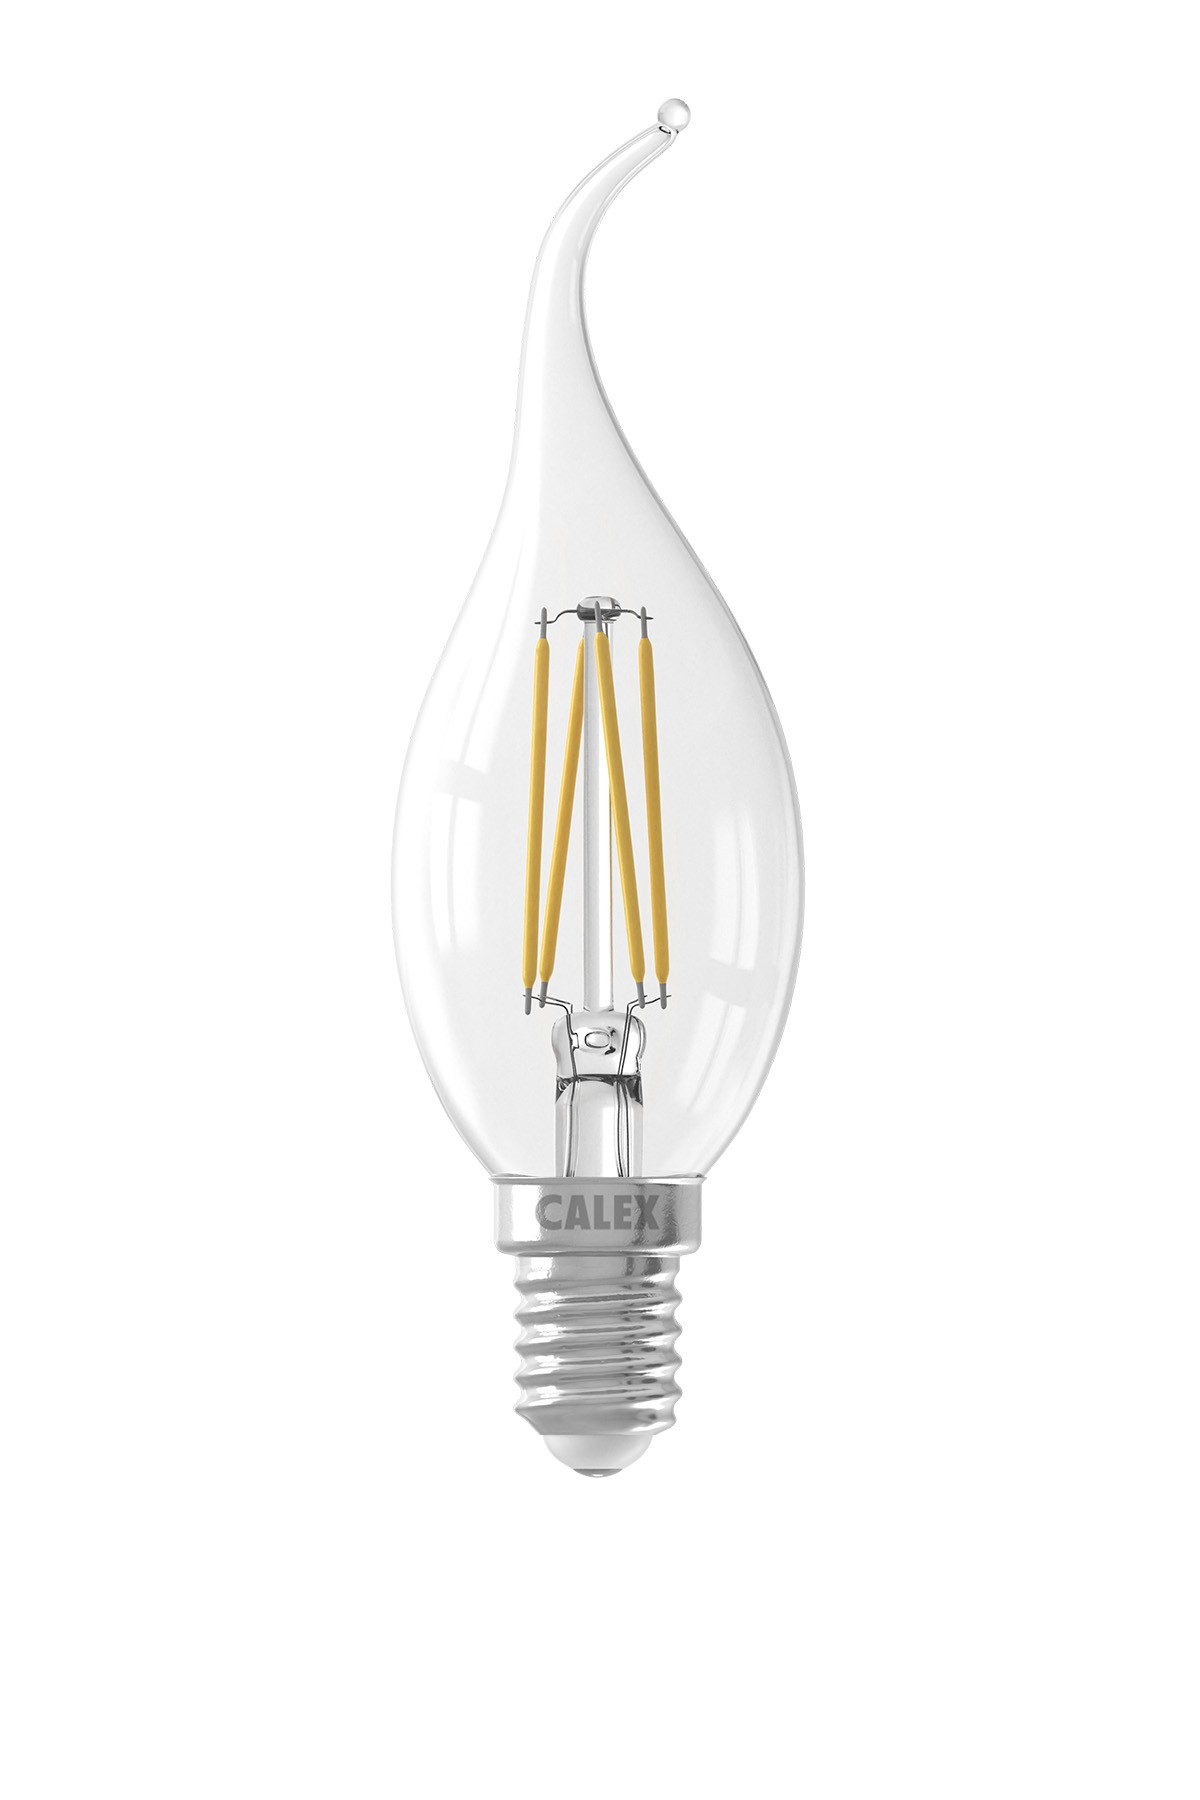 LED filament tipkaarslamp dimbaar 240V 3,5W